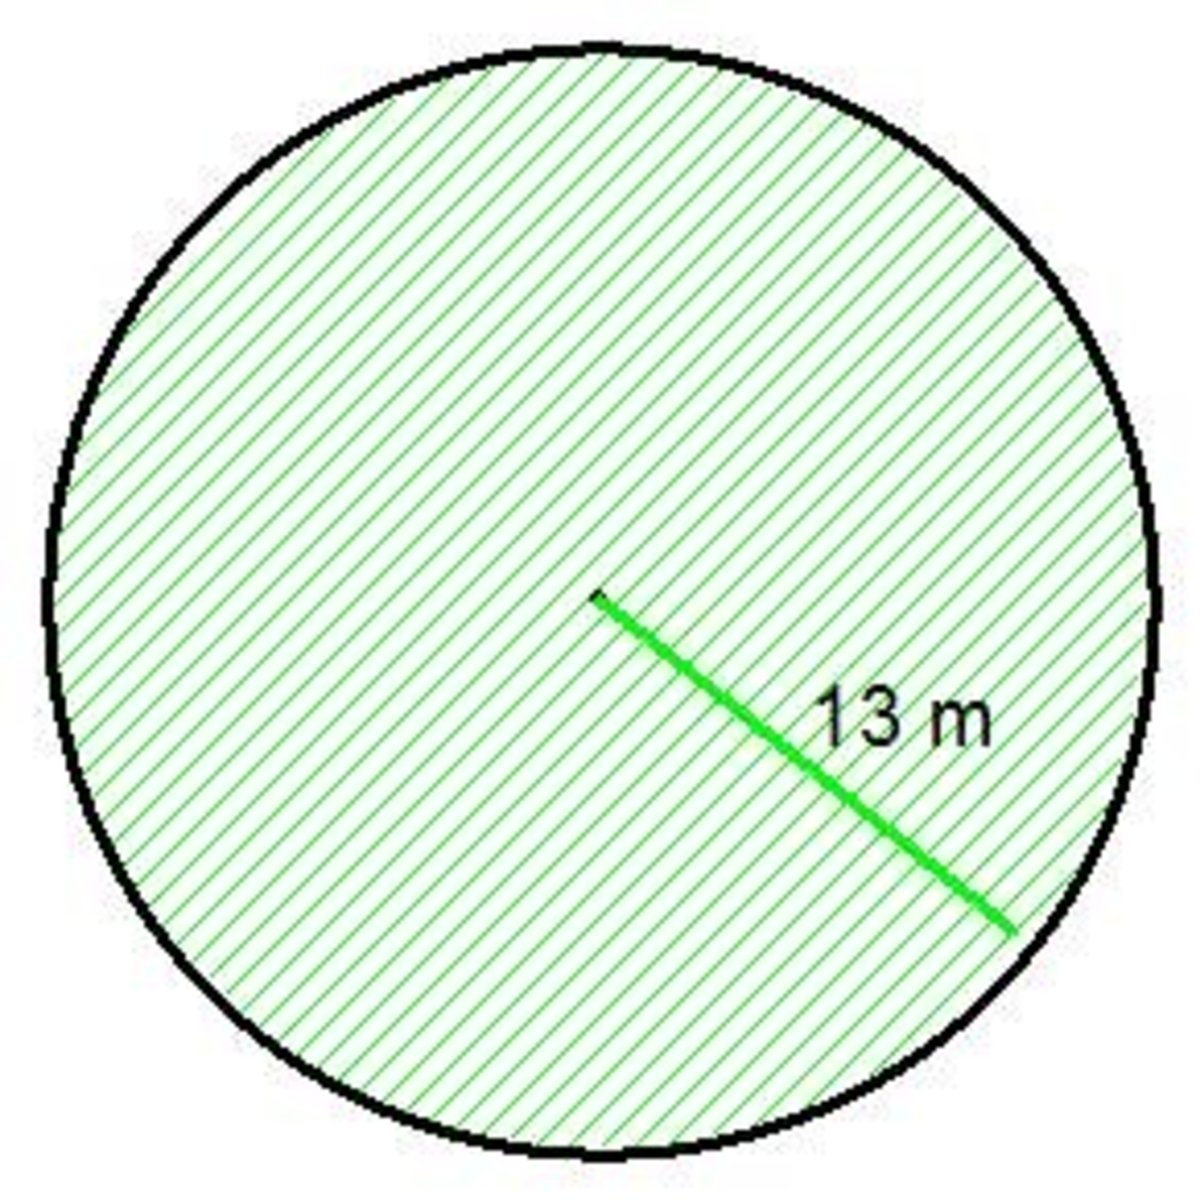 Math Help: How to Calculate the Area of Circle and Get an Answer in Terms of Pi